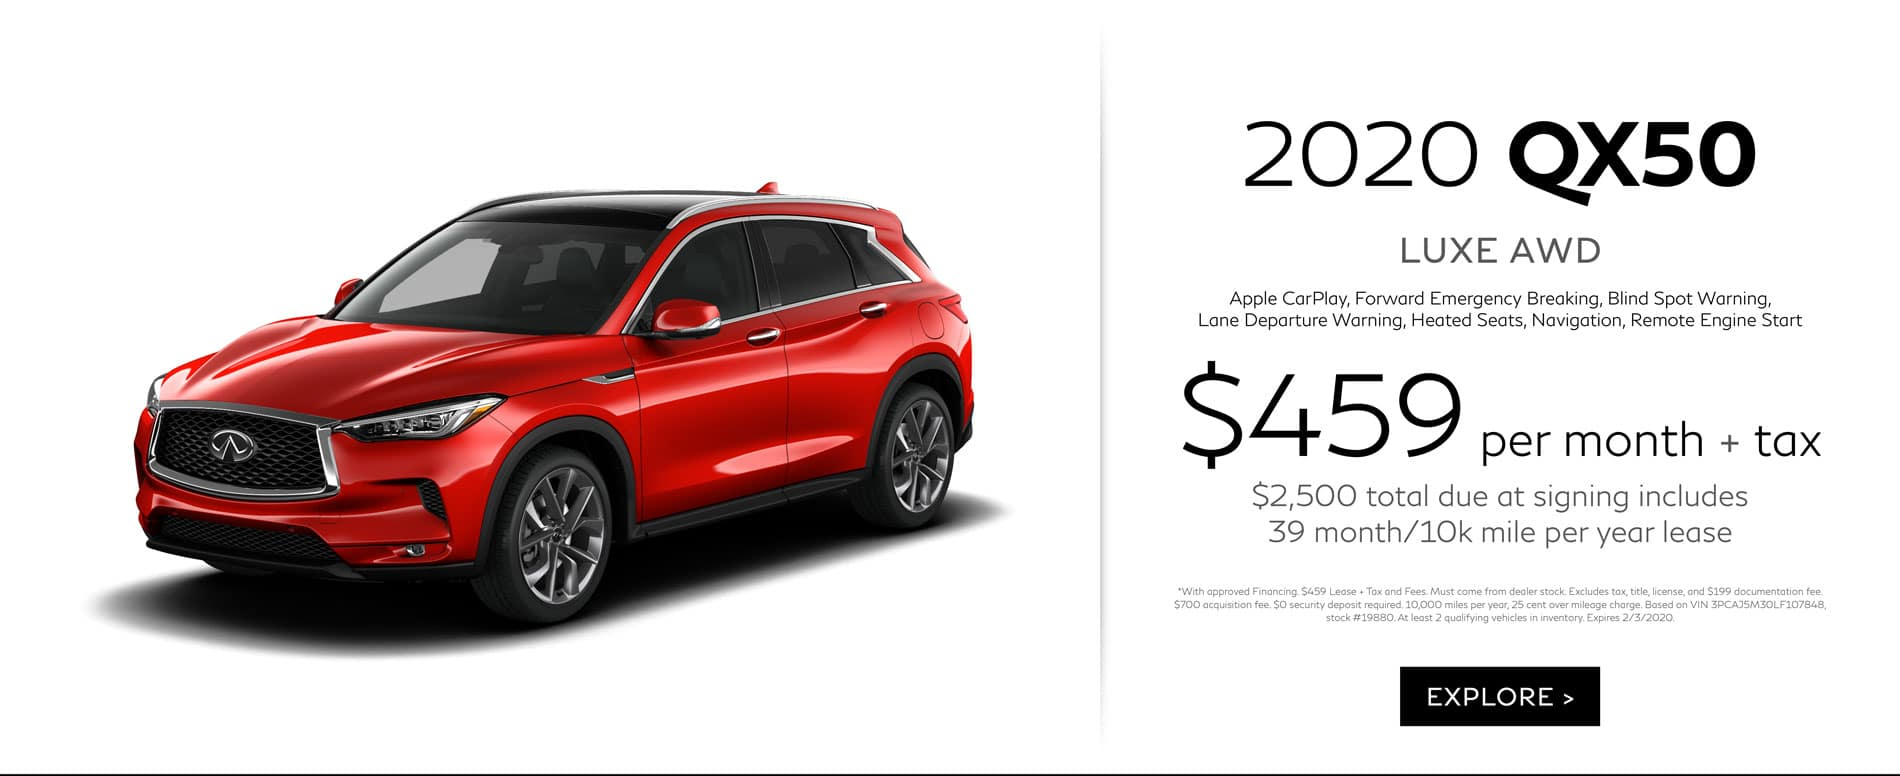 DR INFINITI January QX50 Offer | Lease for $459/mo